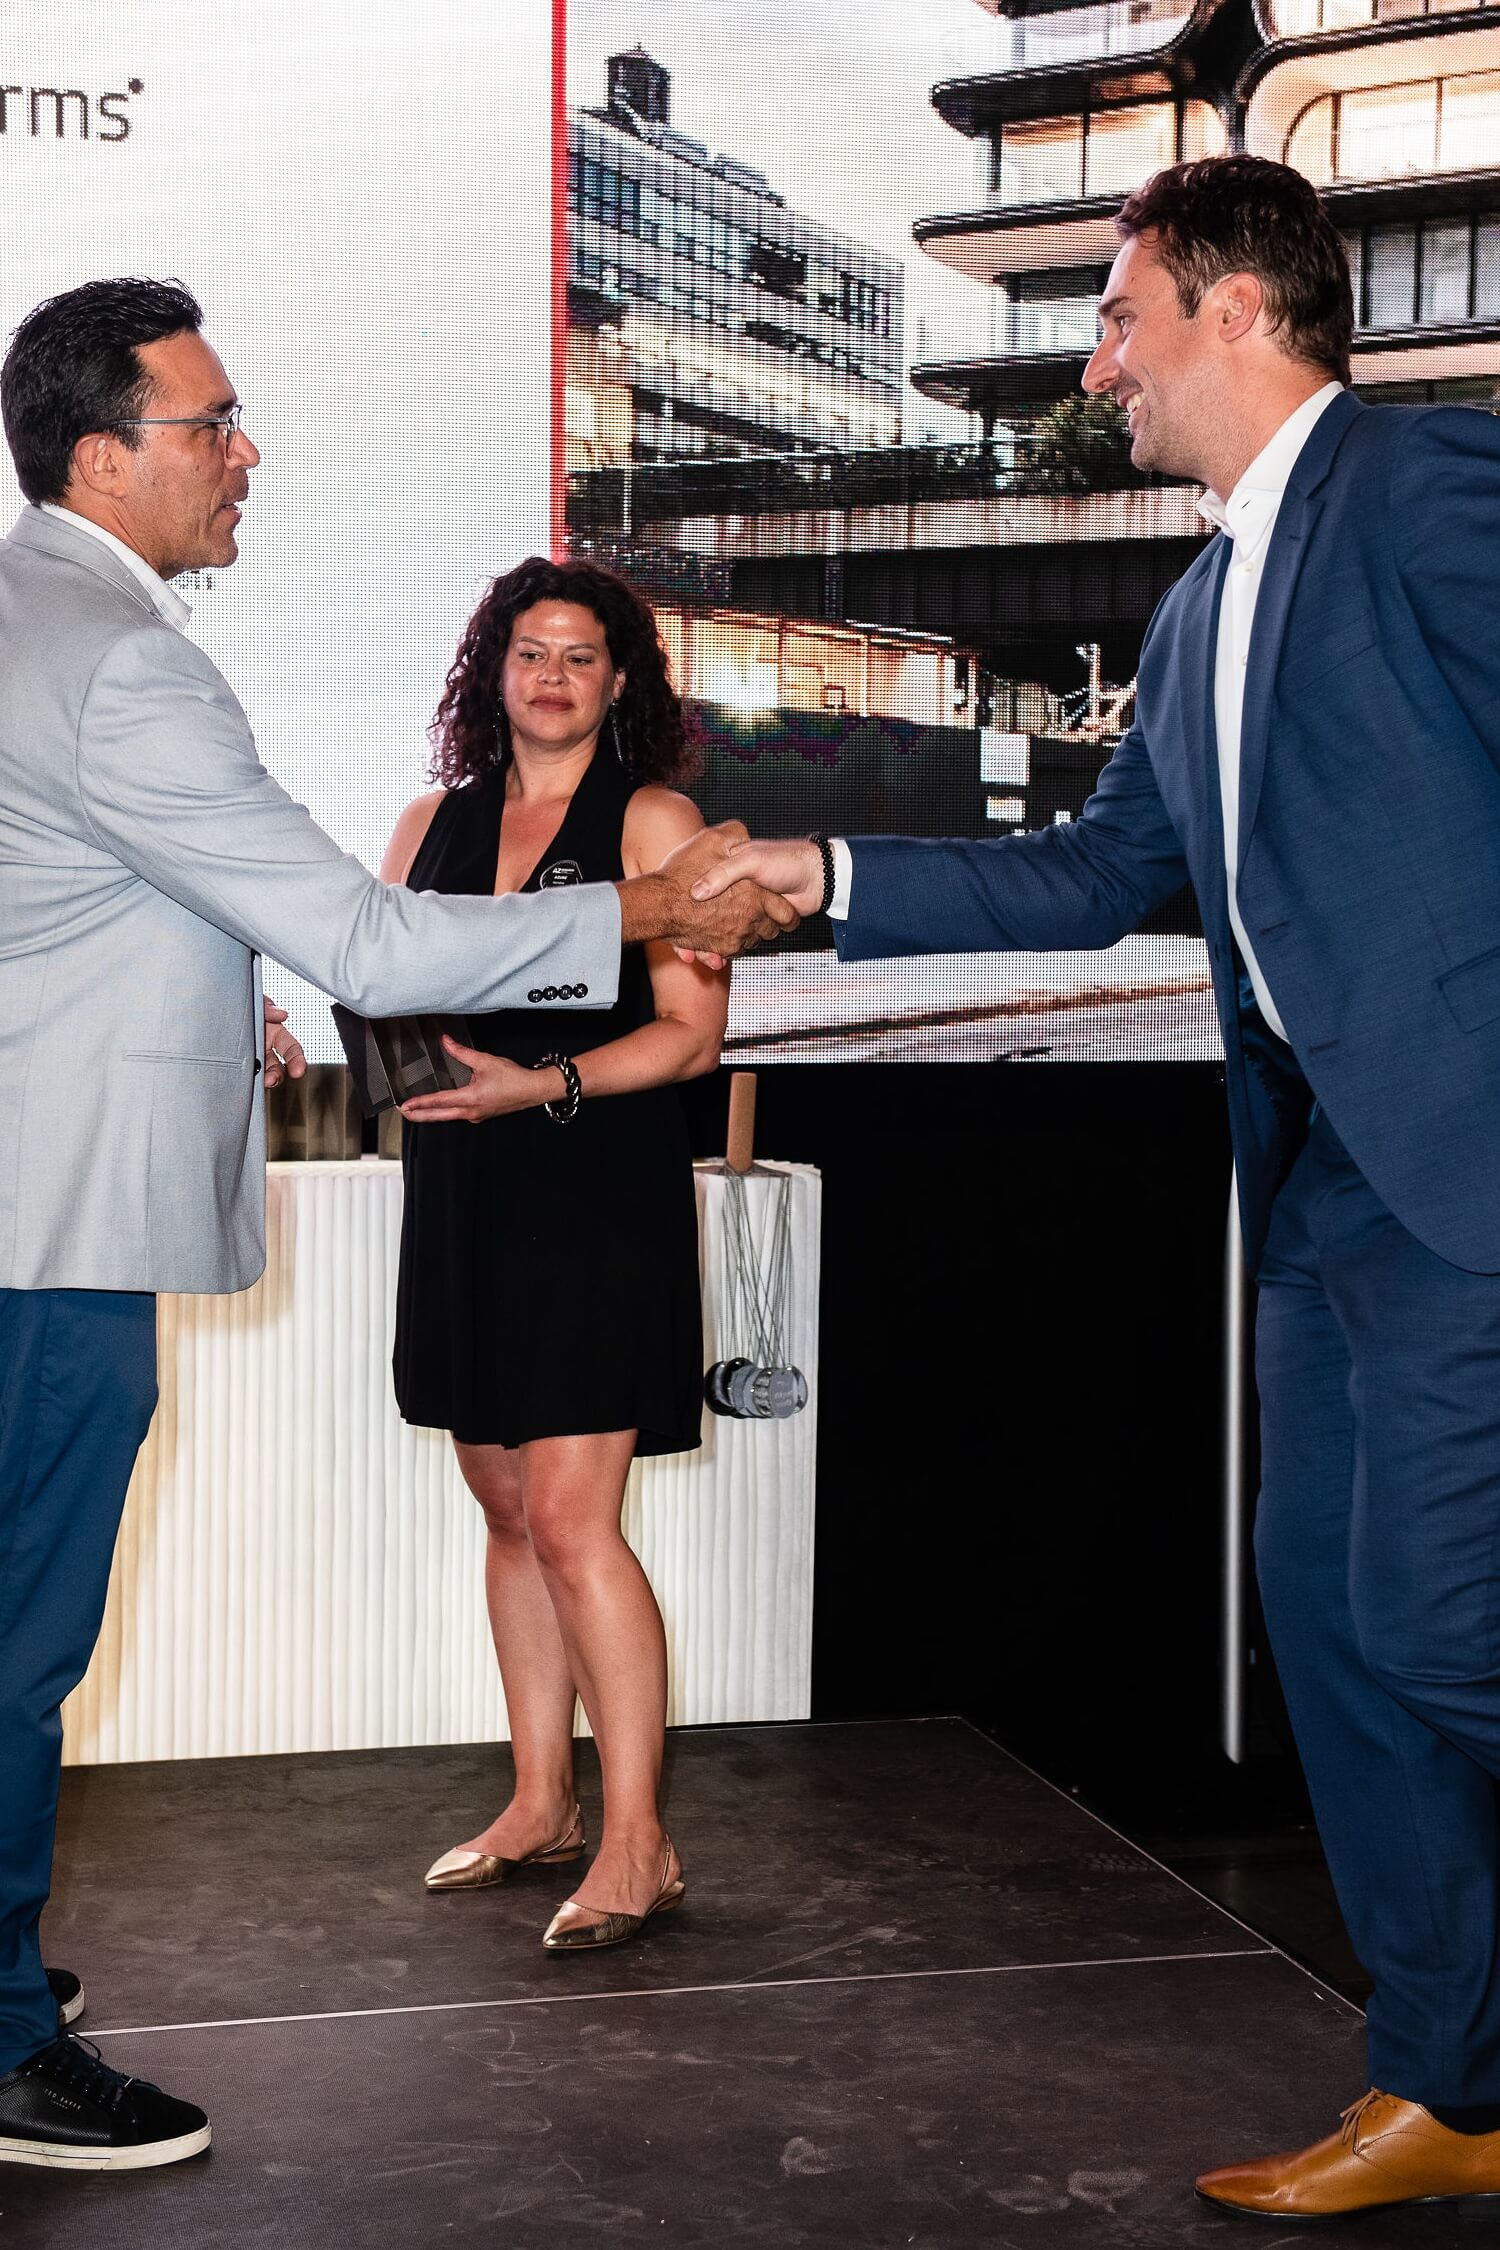 Johannes Schafelner of Zaha Hadid Architects in London accepts the AZ Award for his firm's 520 West 28th residential building in New York, AZ Awards 2019: Scenes from the Gala